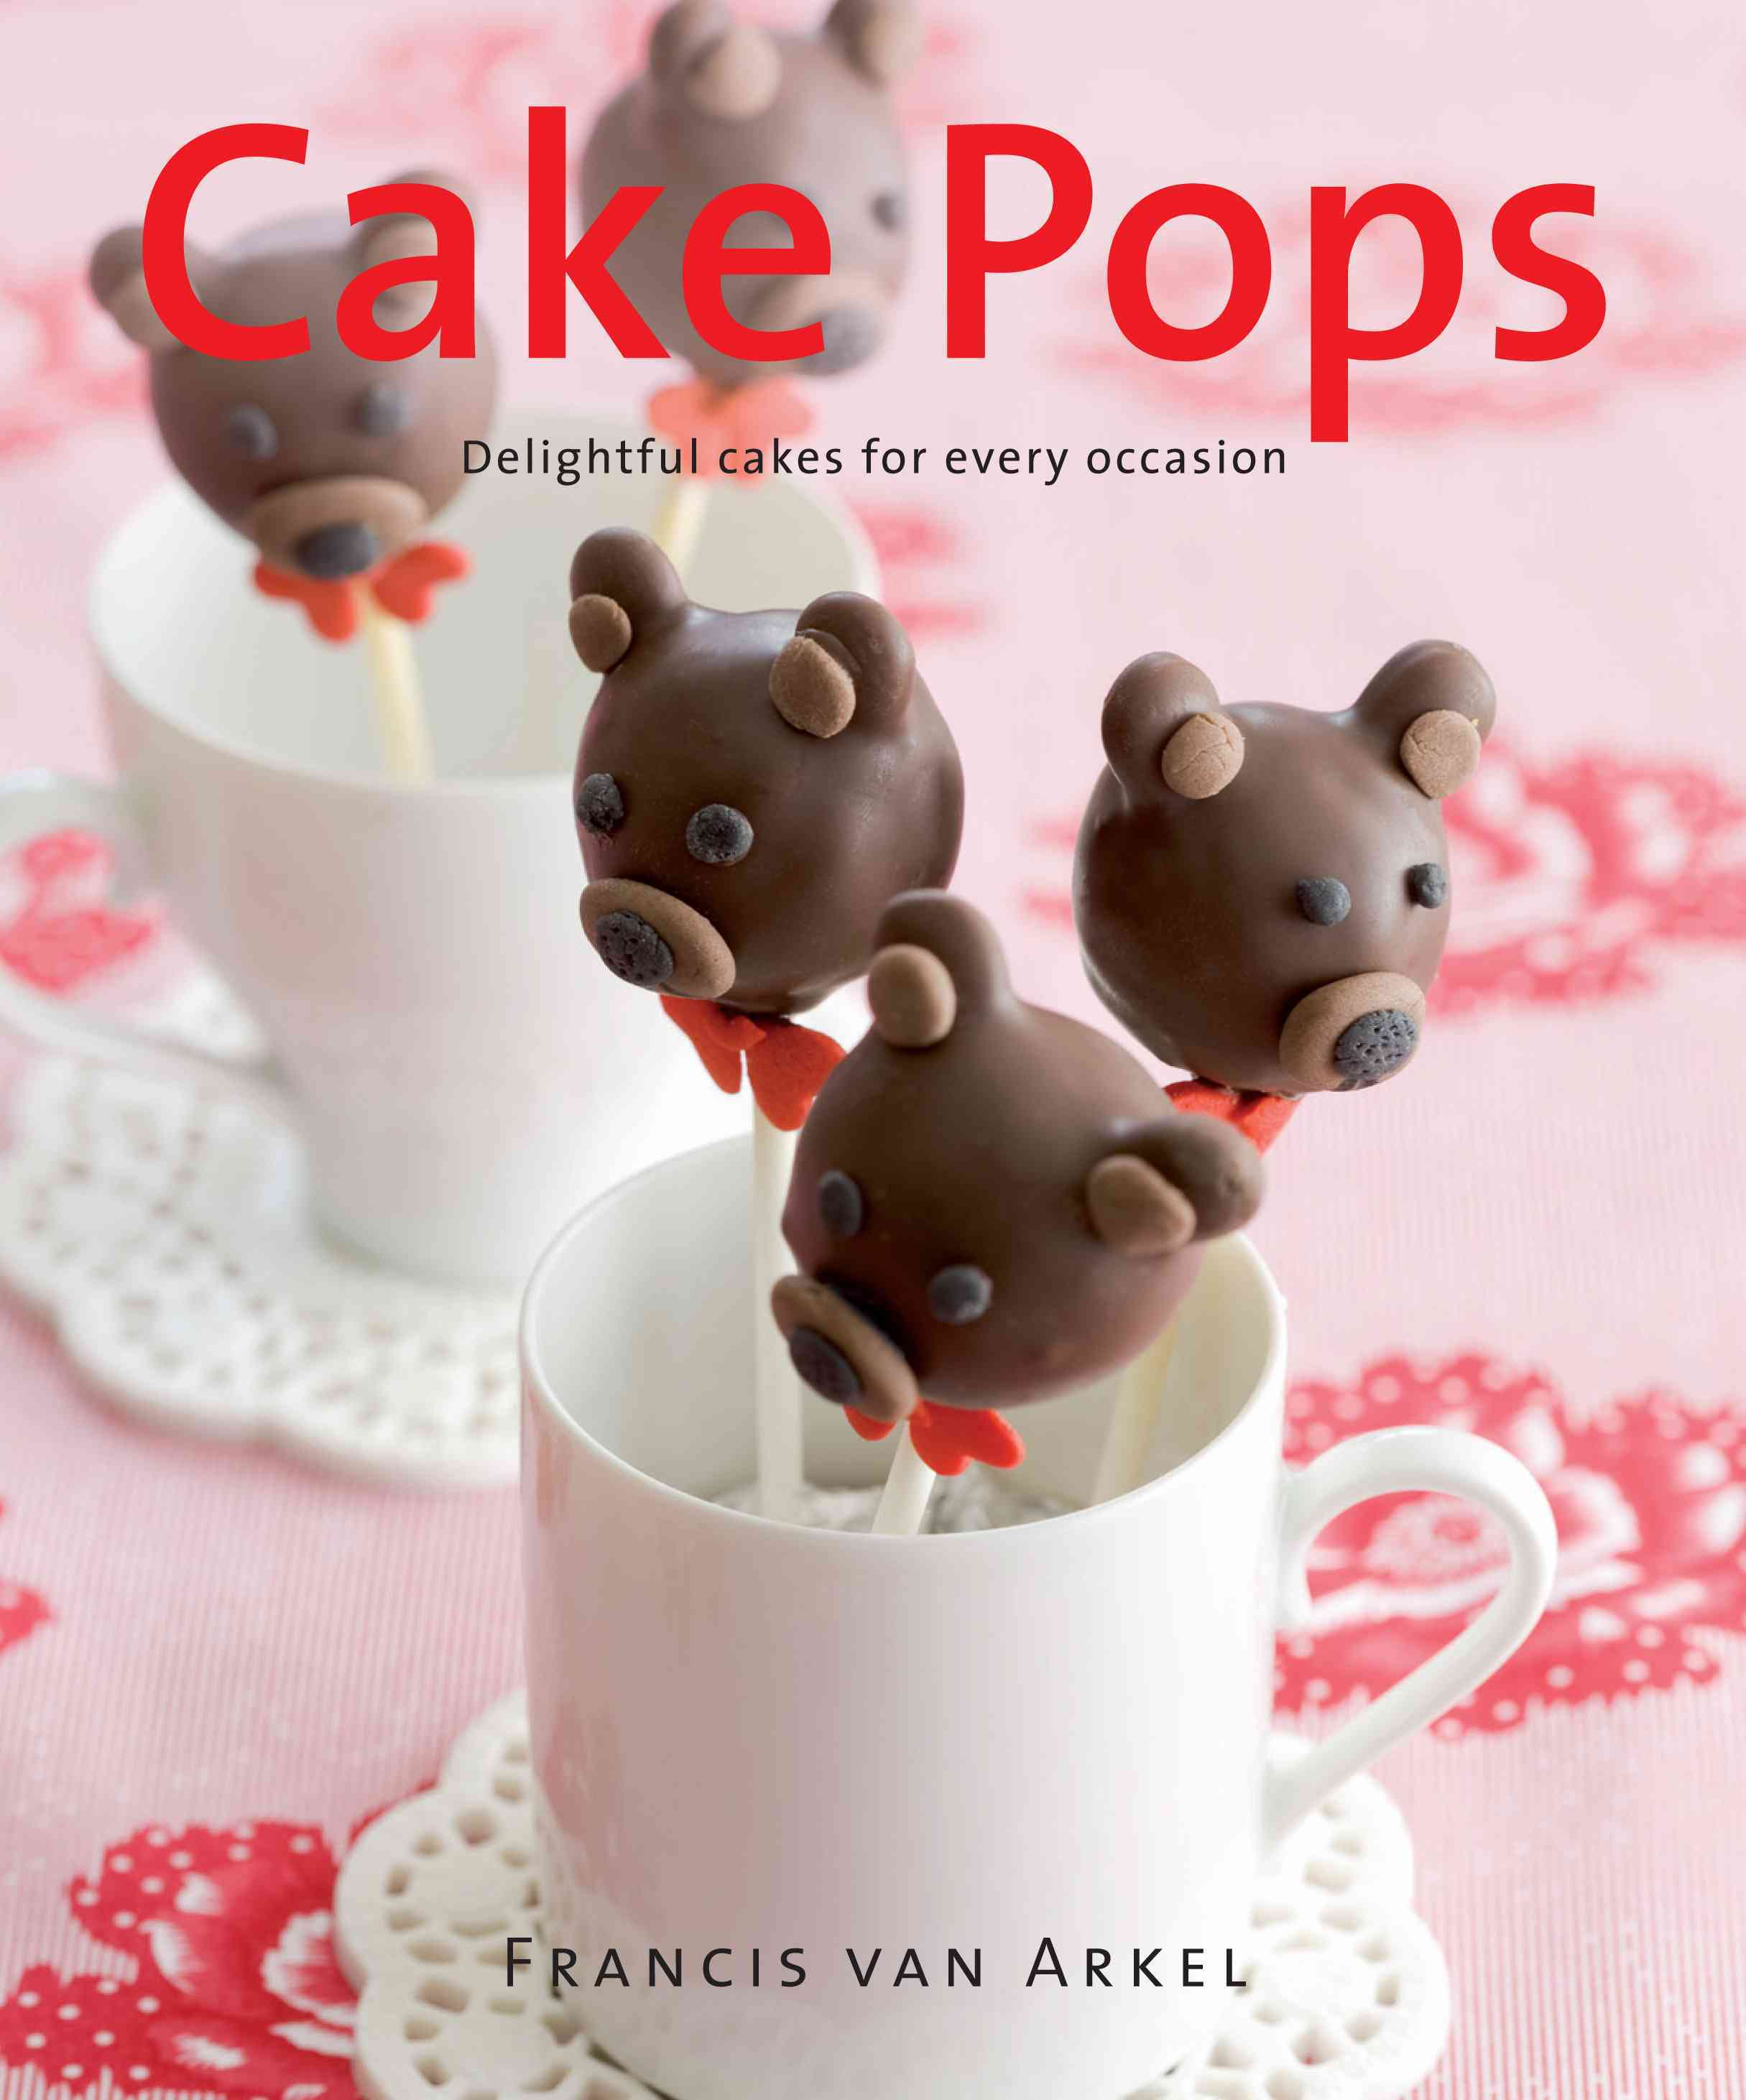 Cake Pops: Delightful Cakes for Every Occasion (Hardcover)